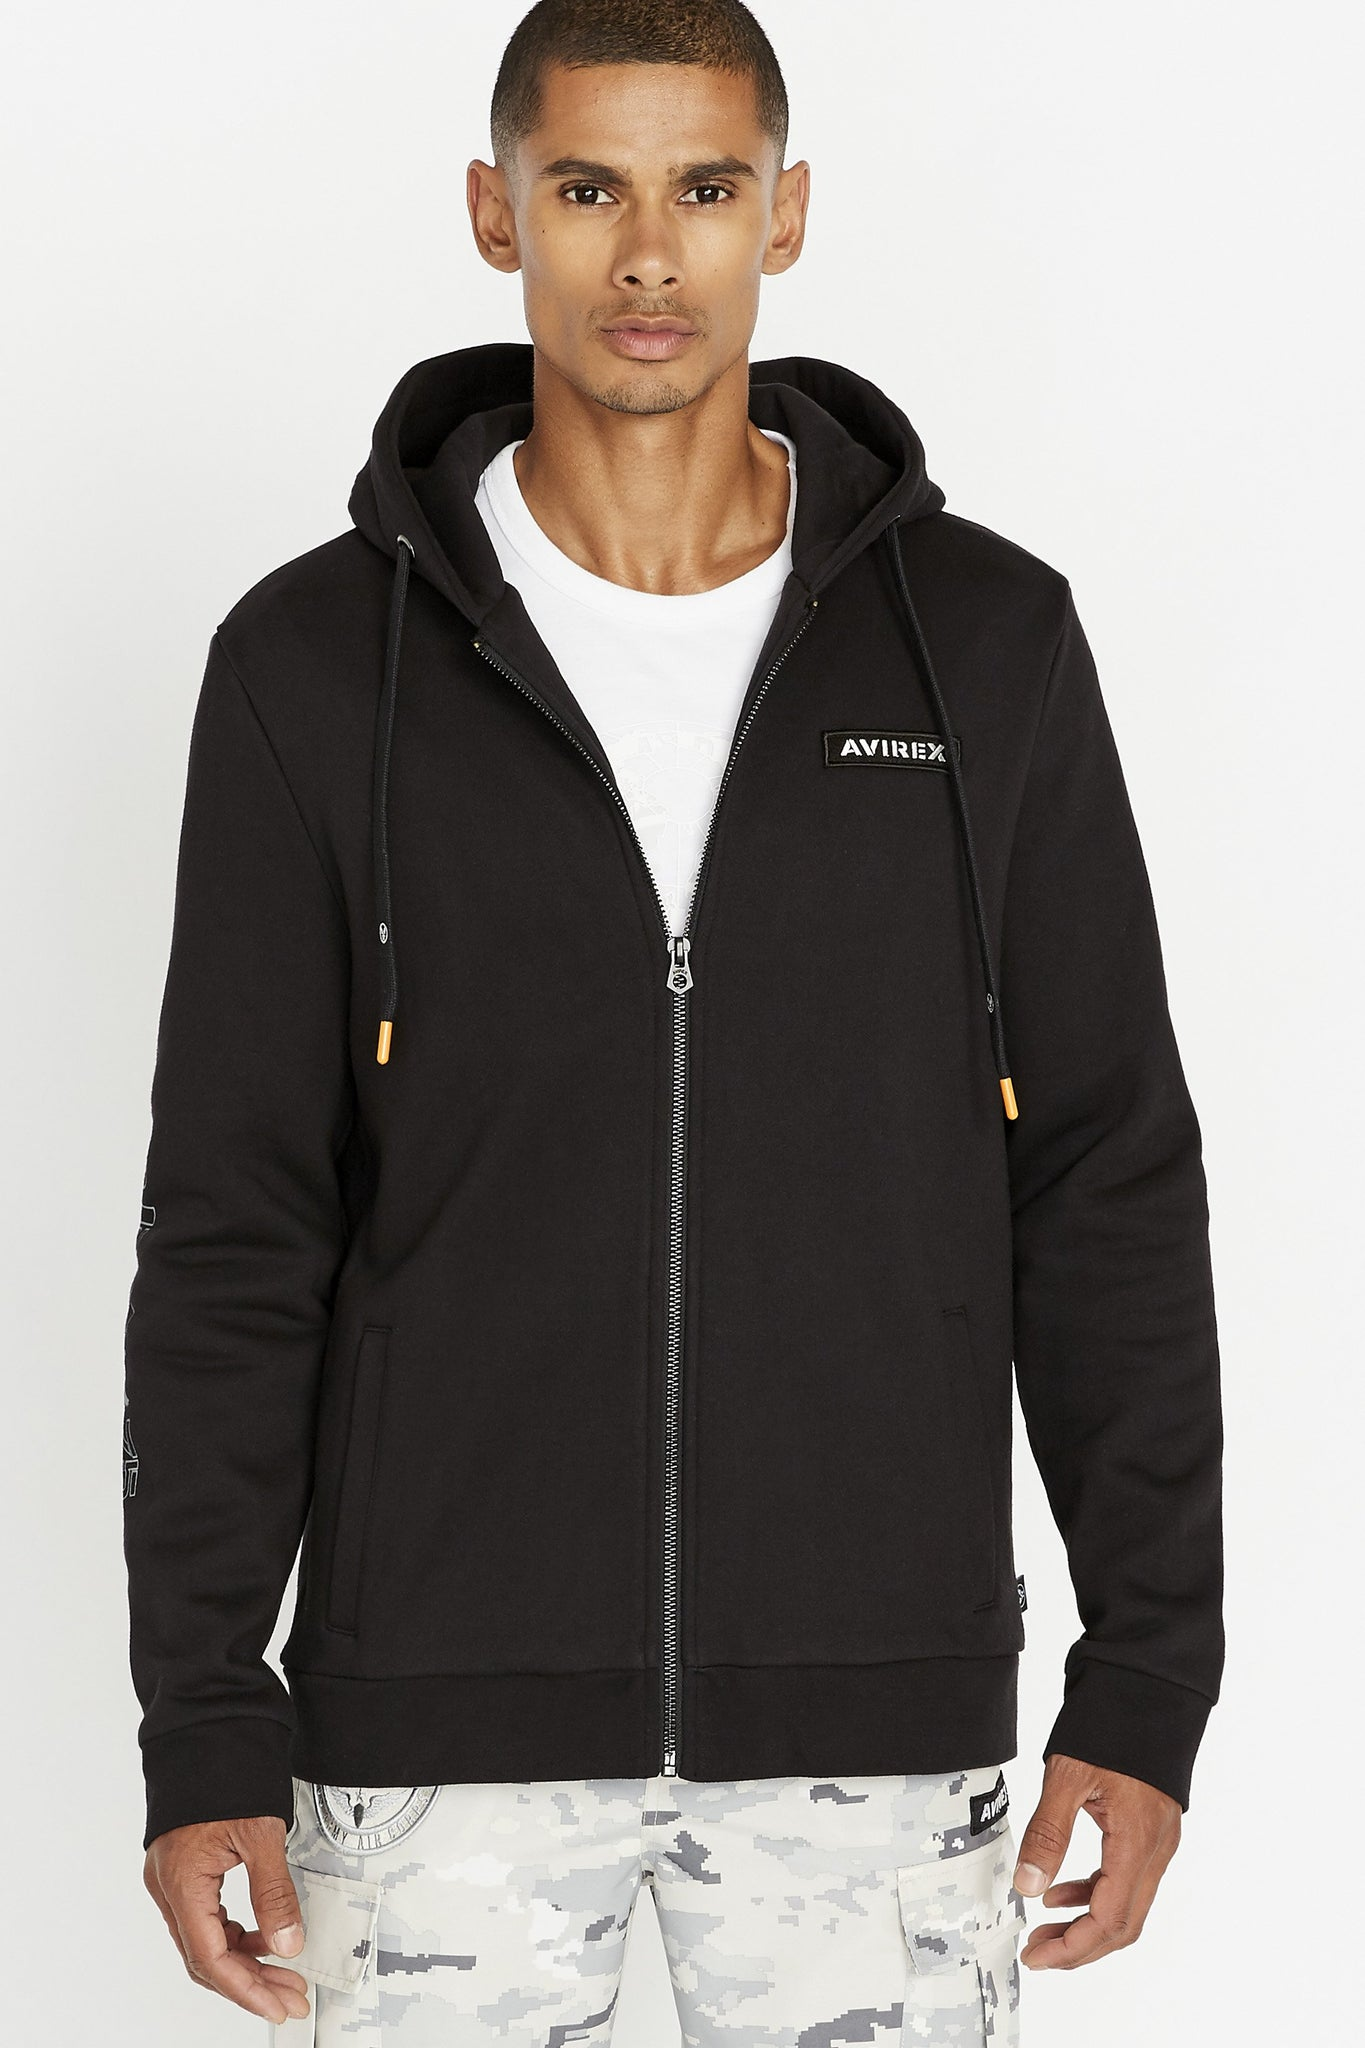 Men wearing a black long sleeve front zip hoodie sweatshirt with Avirex chest patch